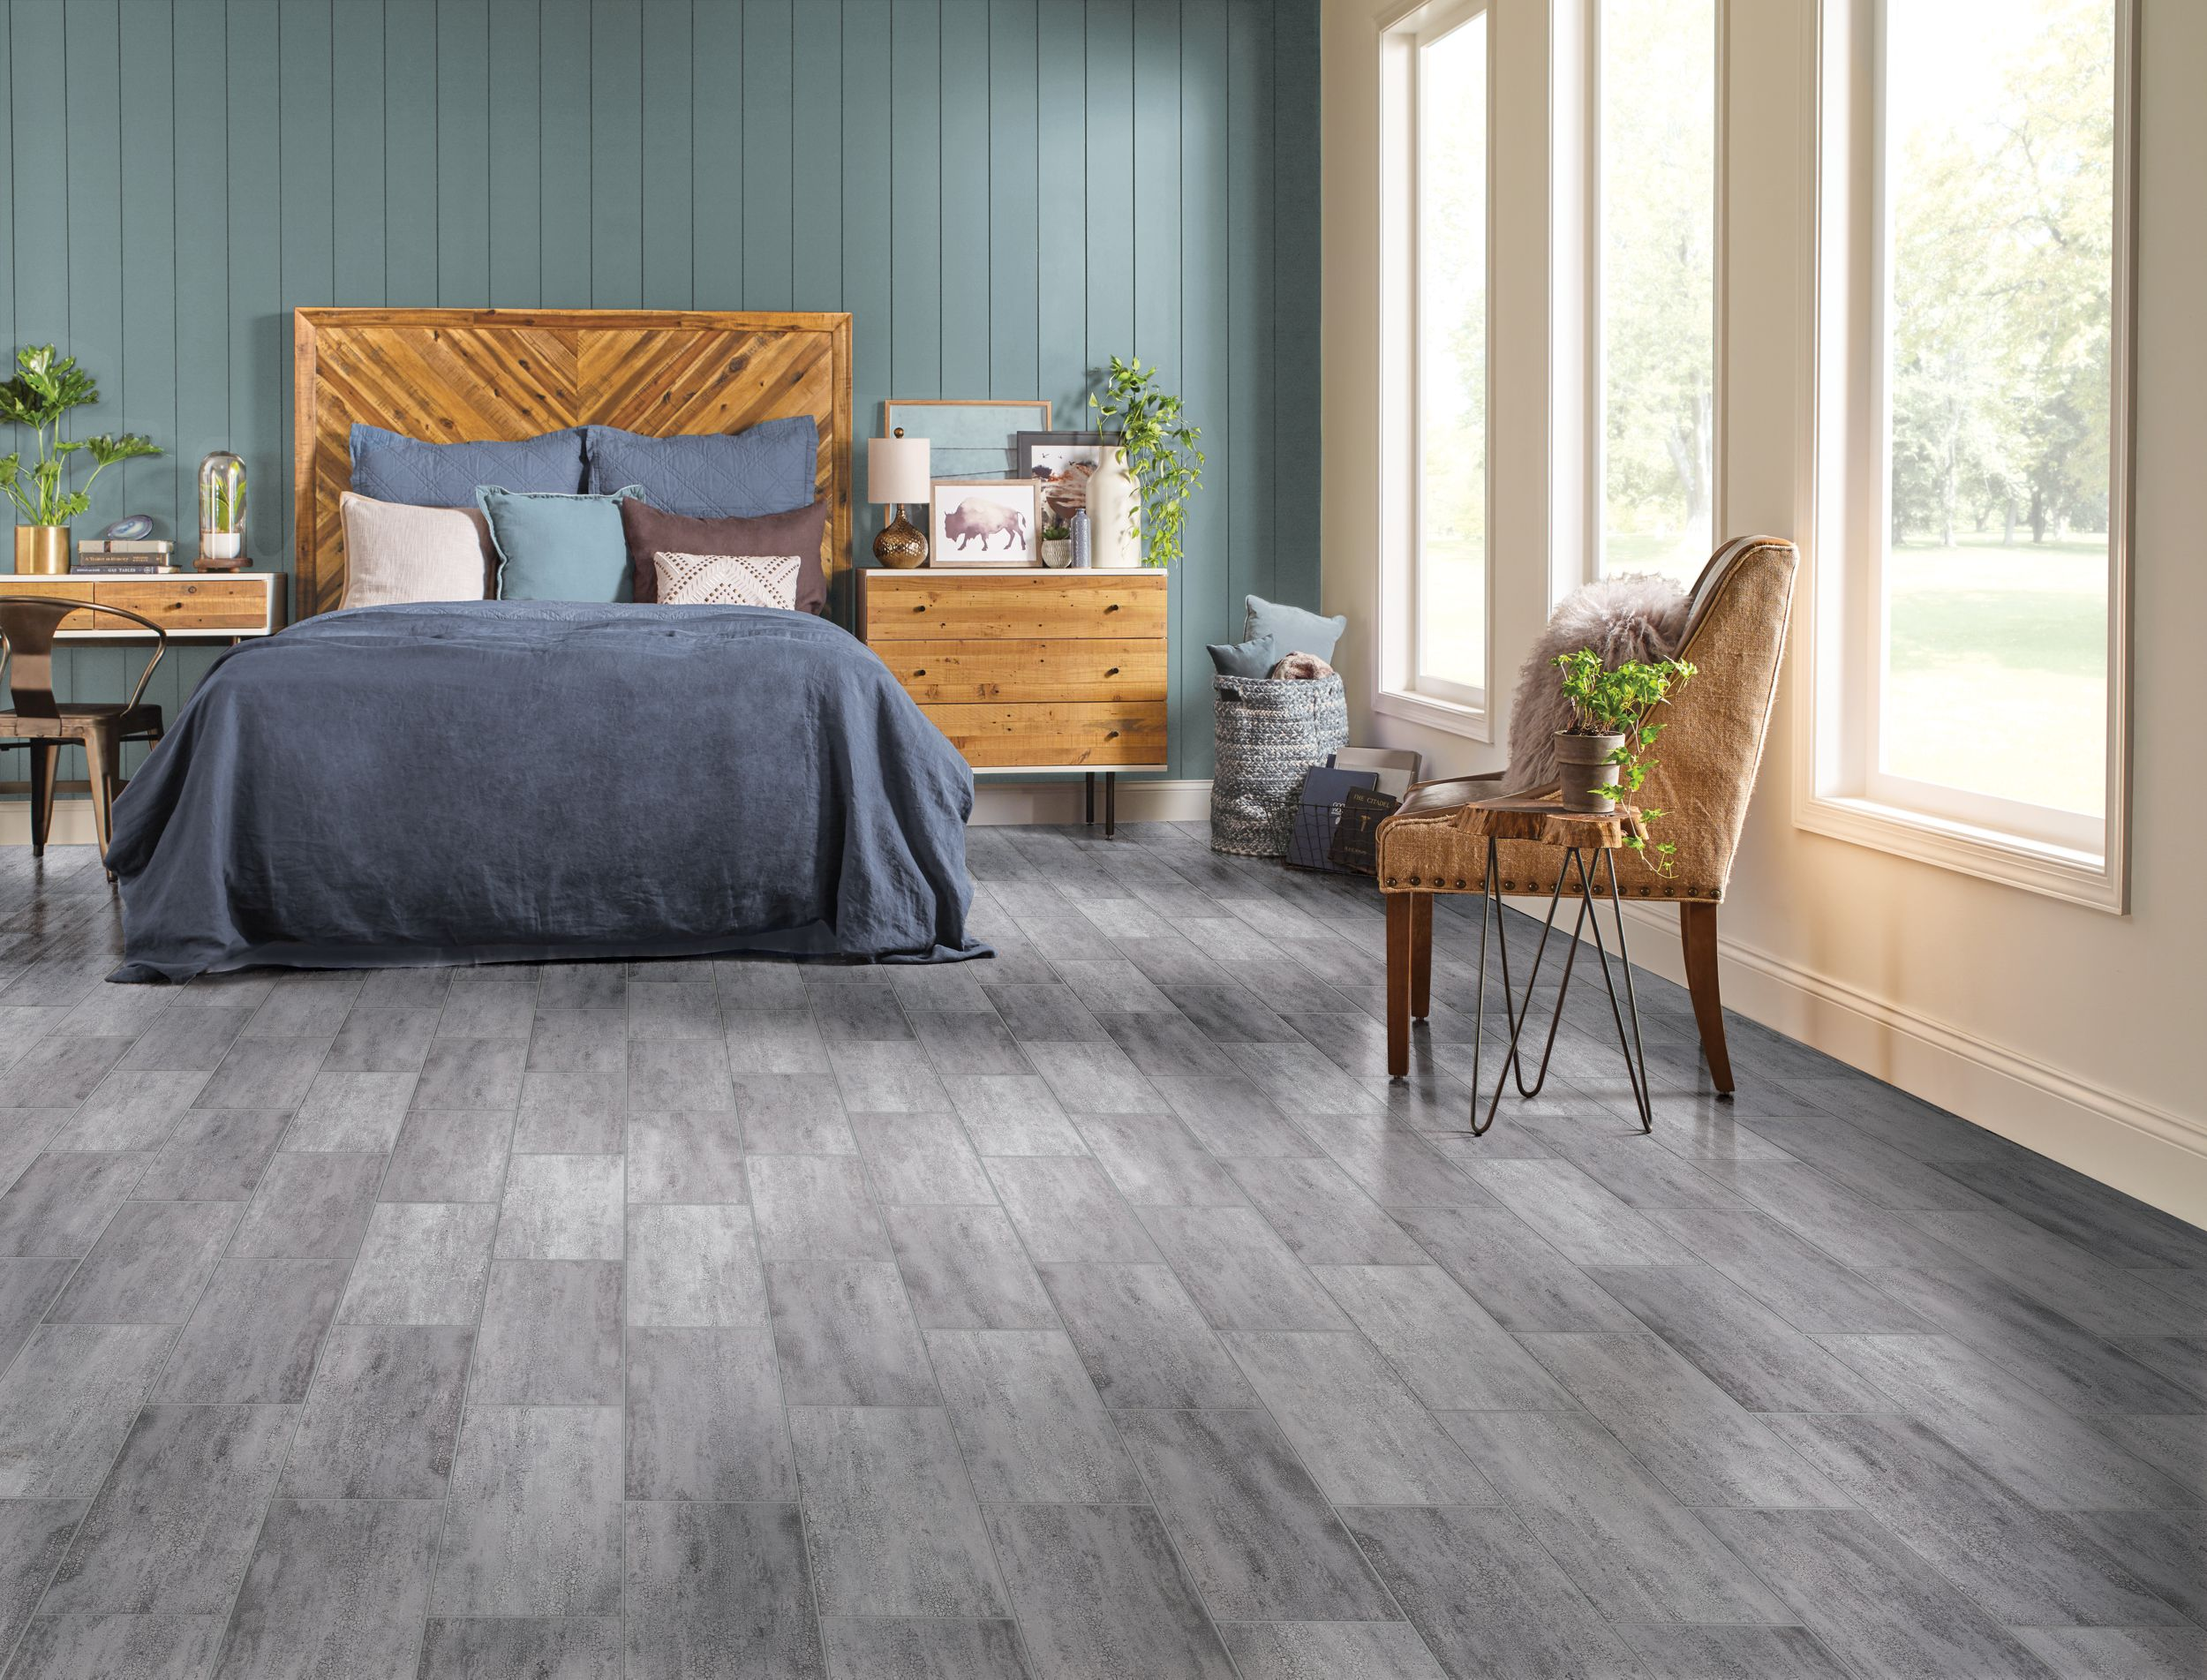 Bedroom flooring with PRYZM rigid core hybrid flooring